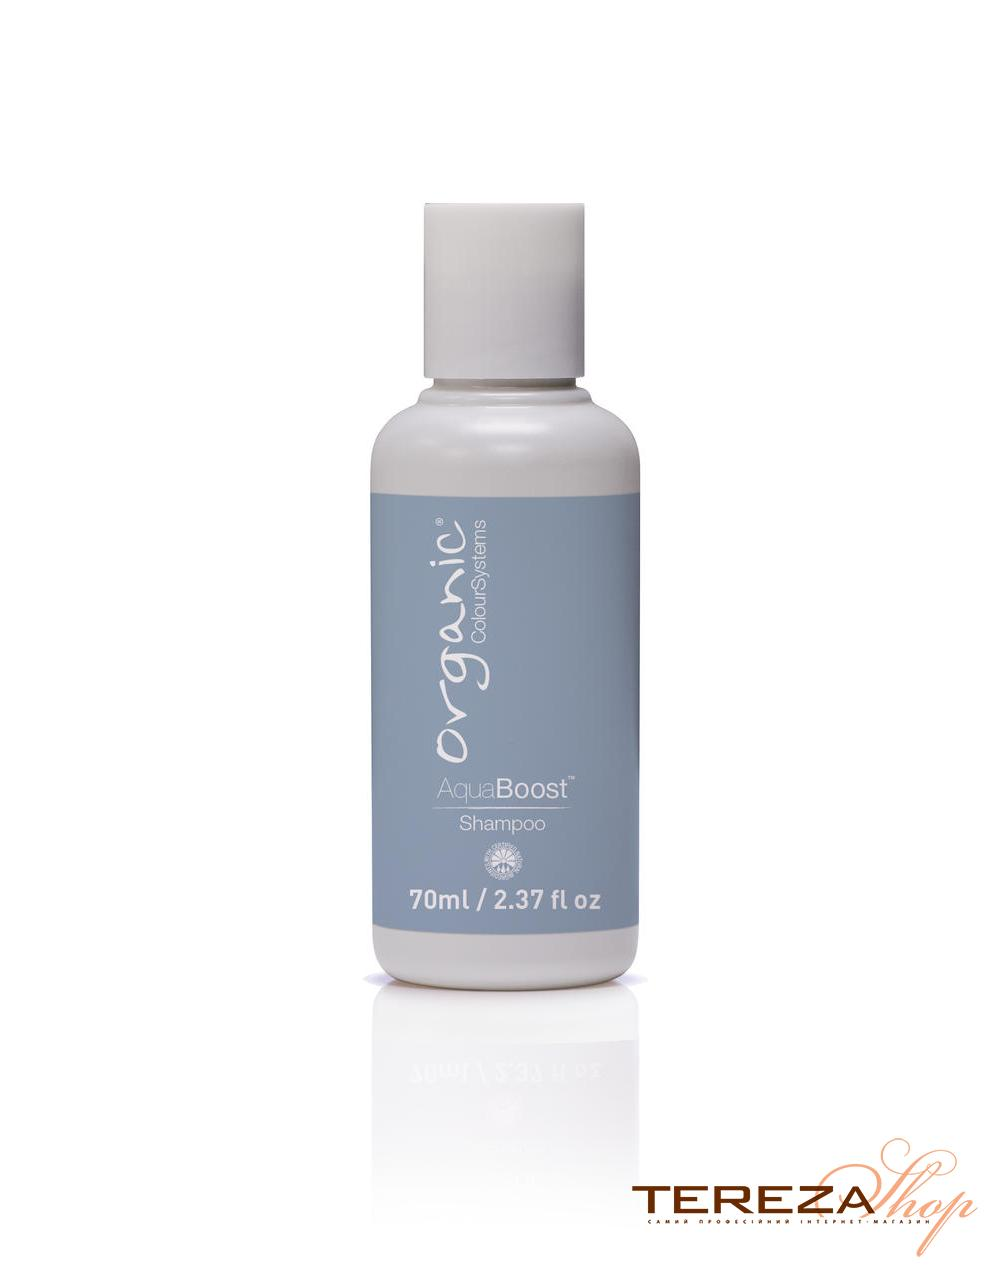 AQUA BOOST SHAMPOO 70ml ORGANIC | Tereza Shop